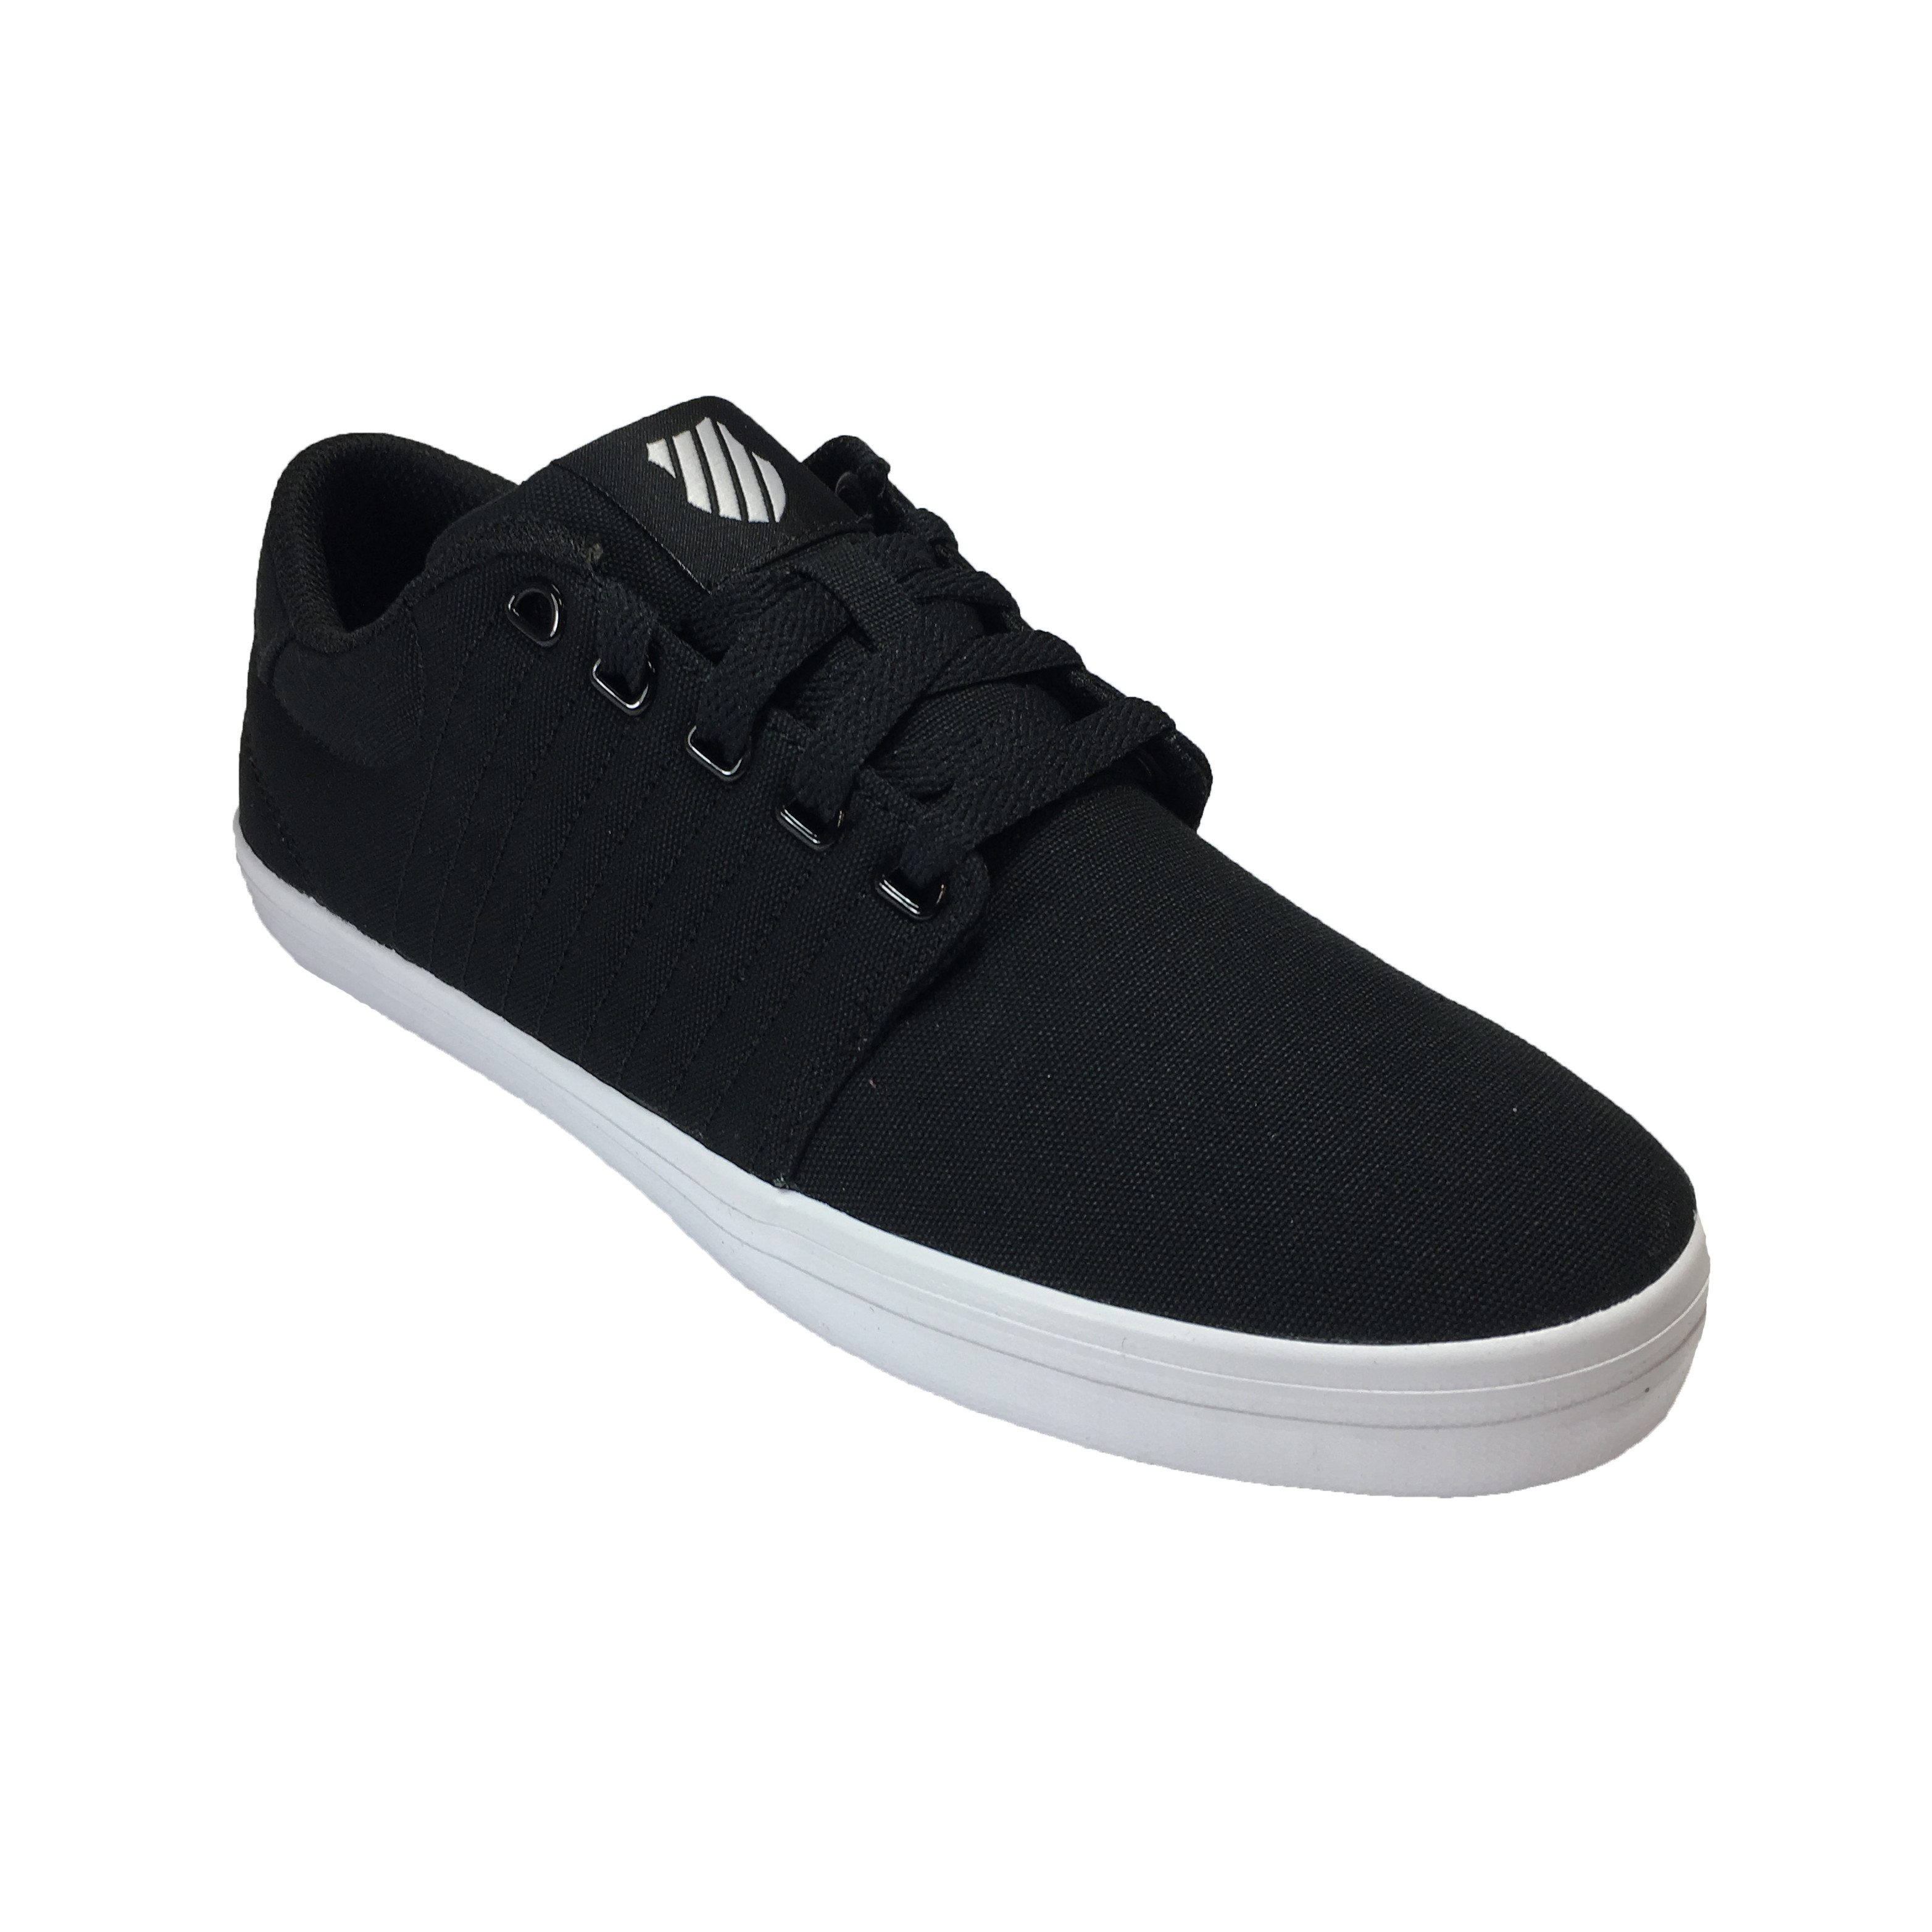 Backspin Canvas Shoes Trainers Black